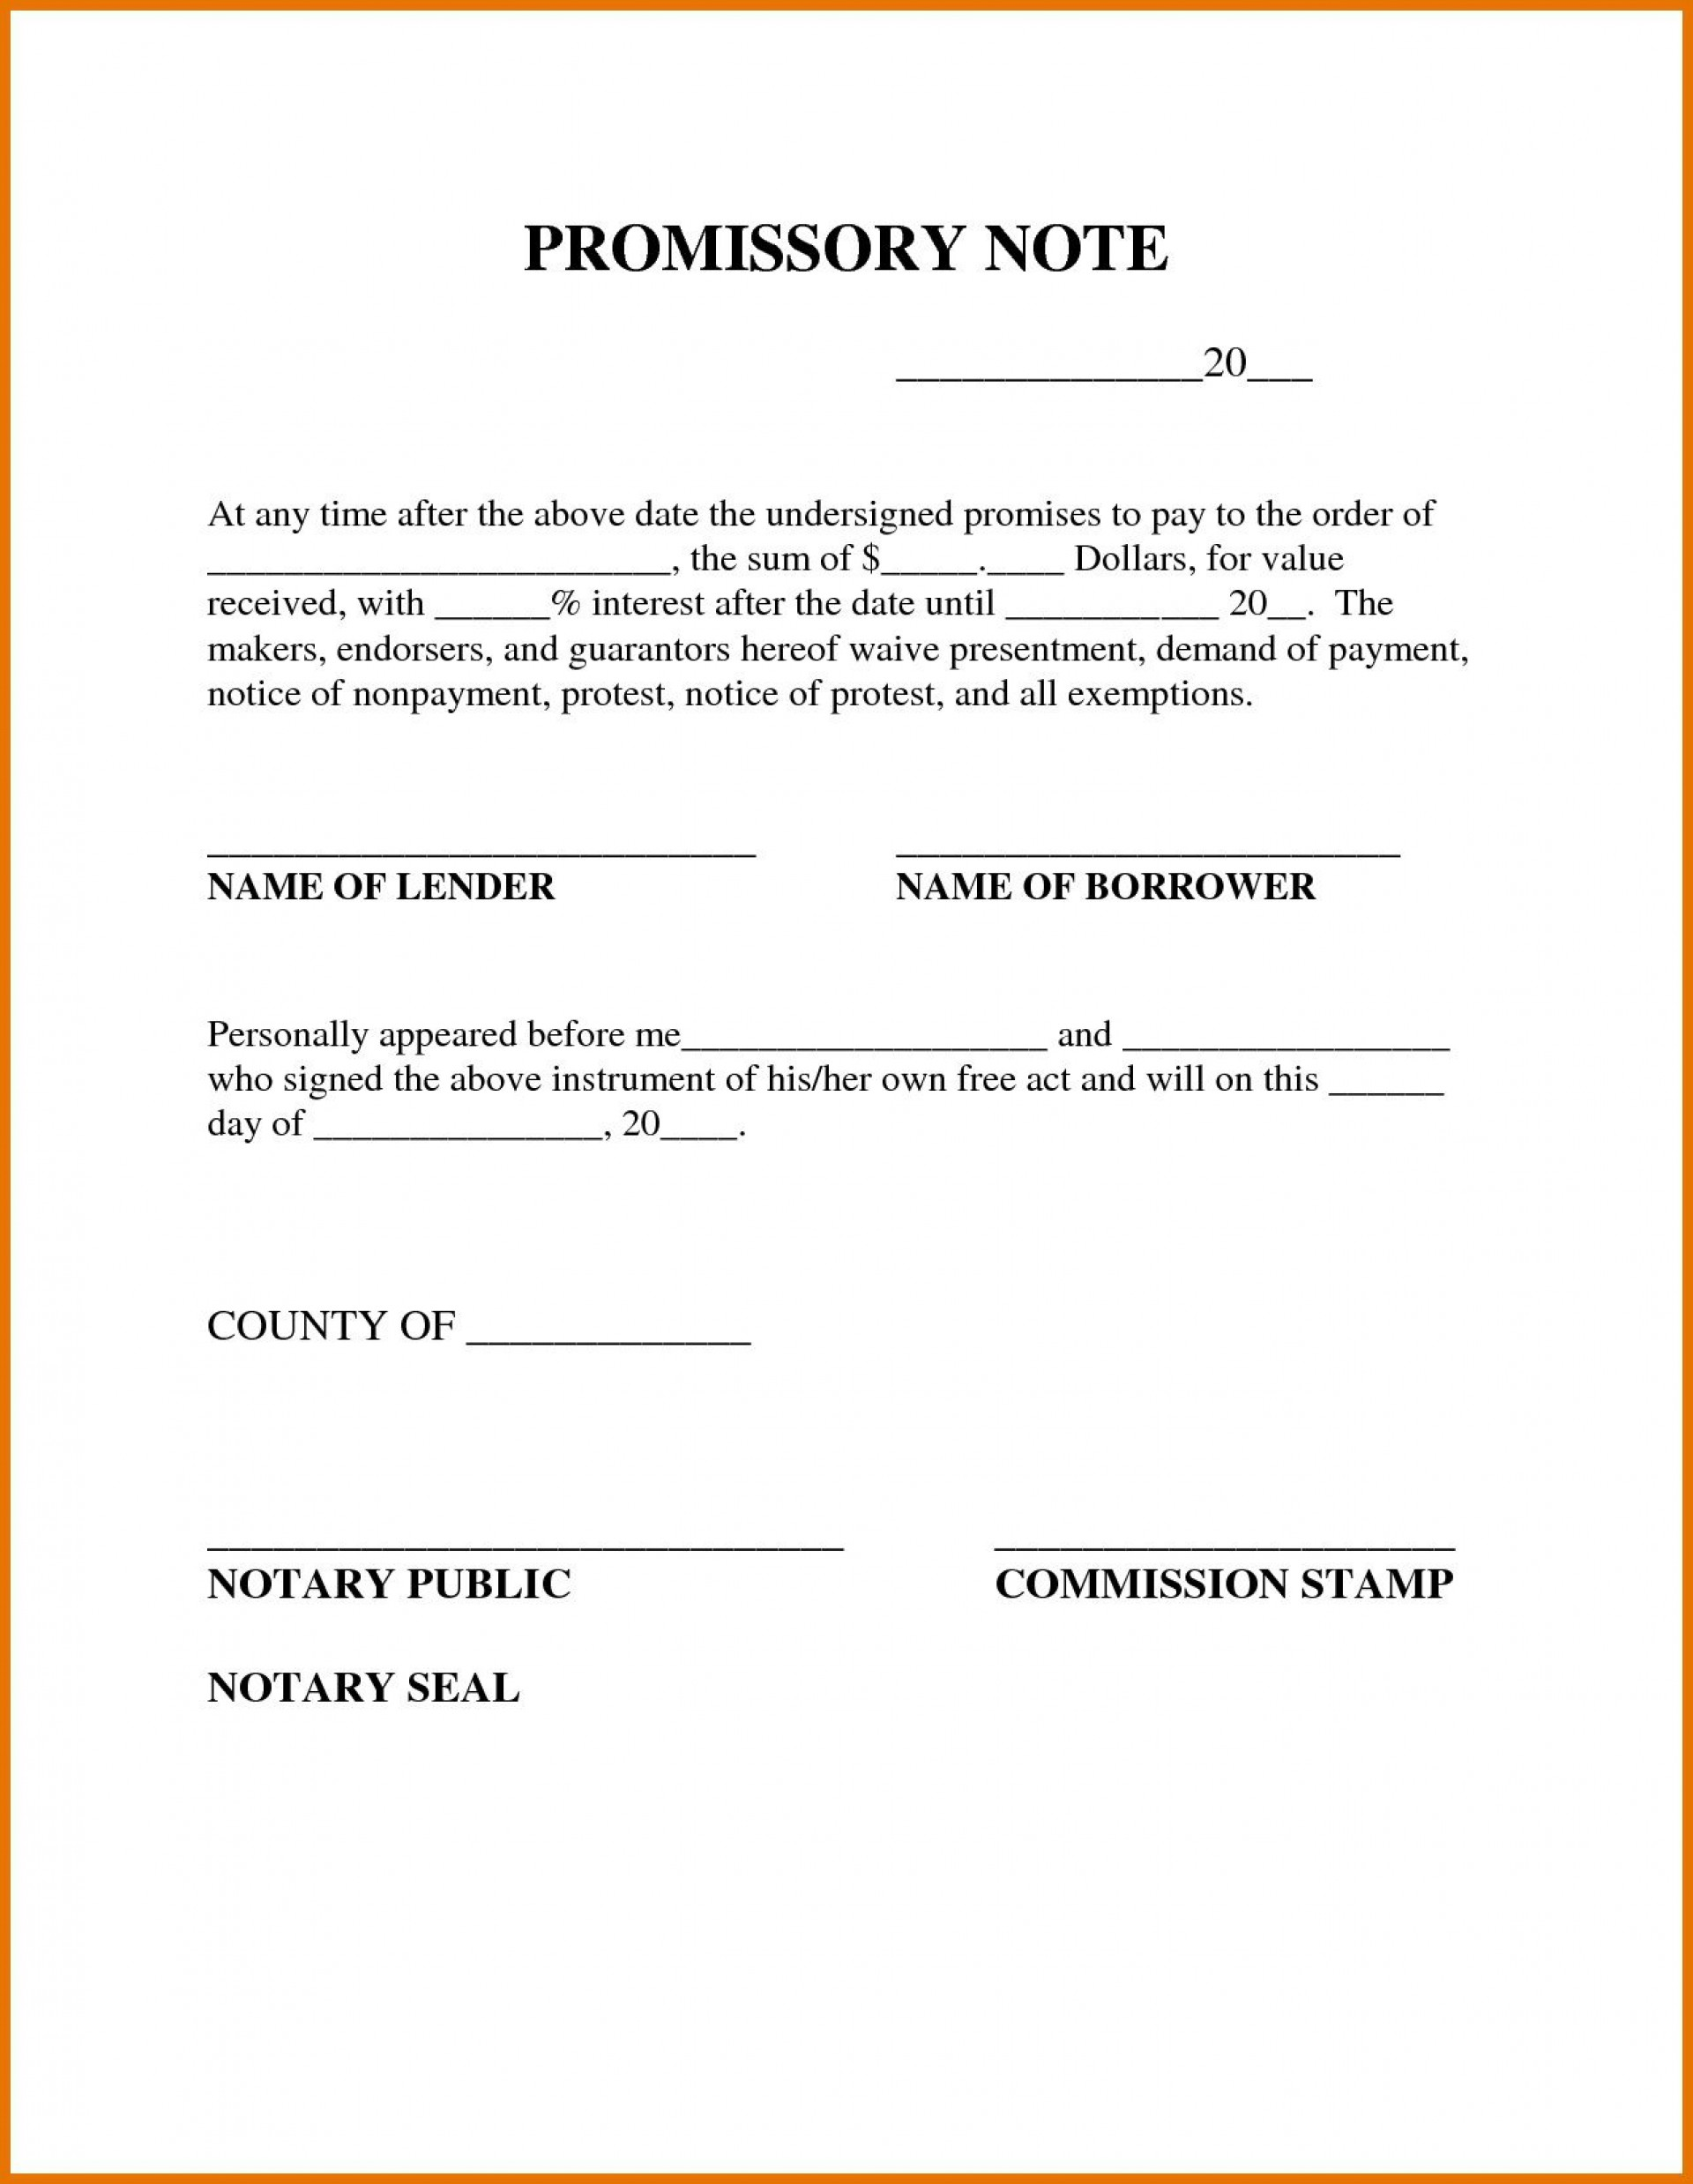 009 Outstanding Simple Promissory Note Template Image  Form Sample Format Of In India1920